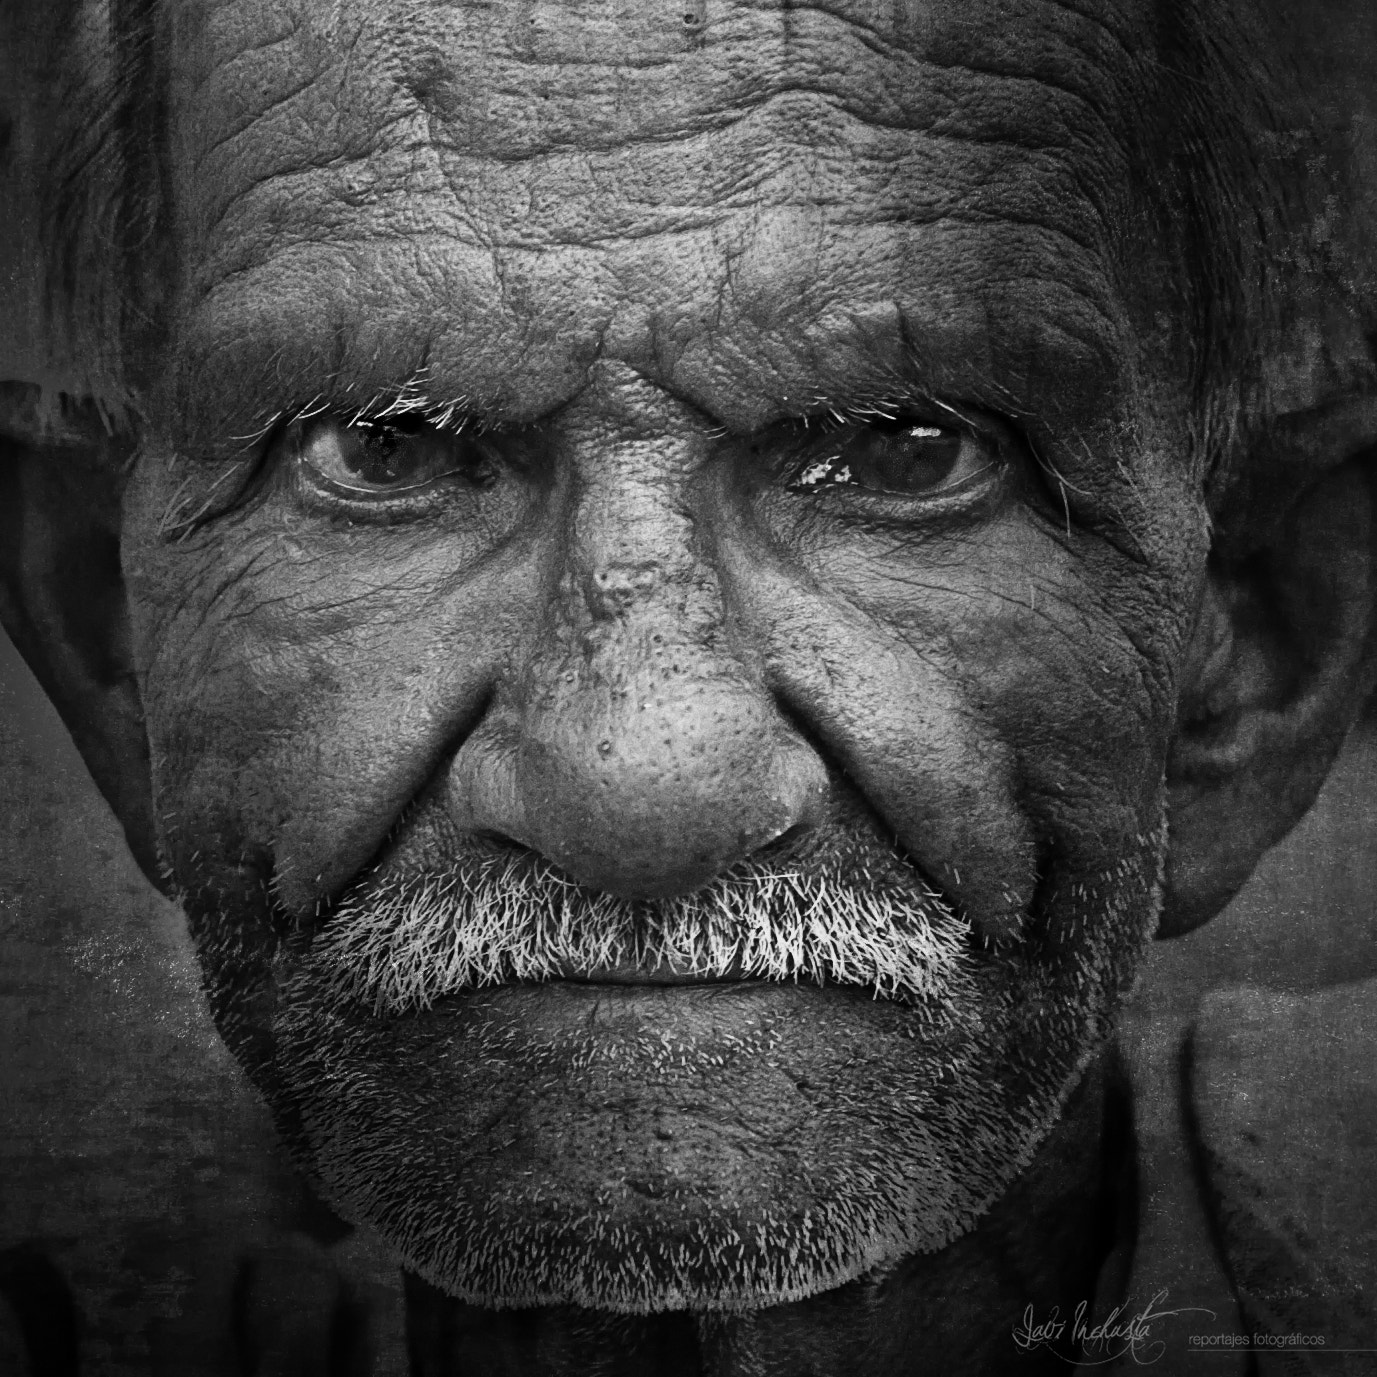 Photograph Ayush ...Long lived by Javi Inchusta on 500px